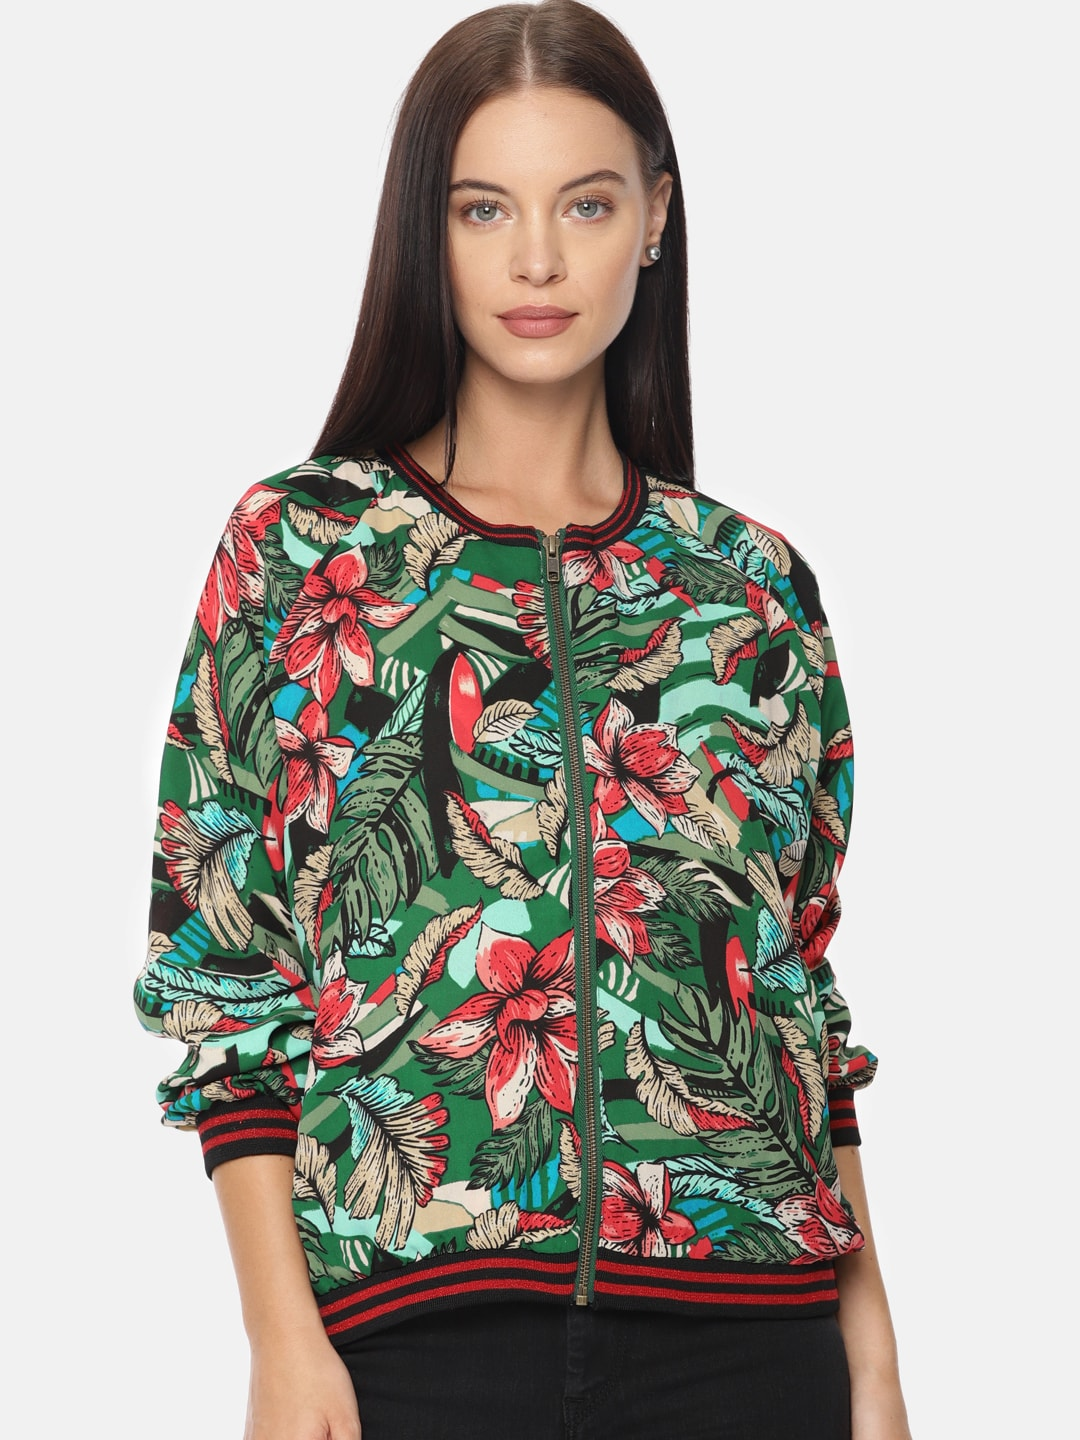 916b5dbc9 Floral Jackets - Buy Floral Jackets online in India